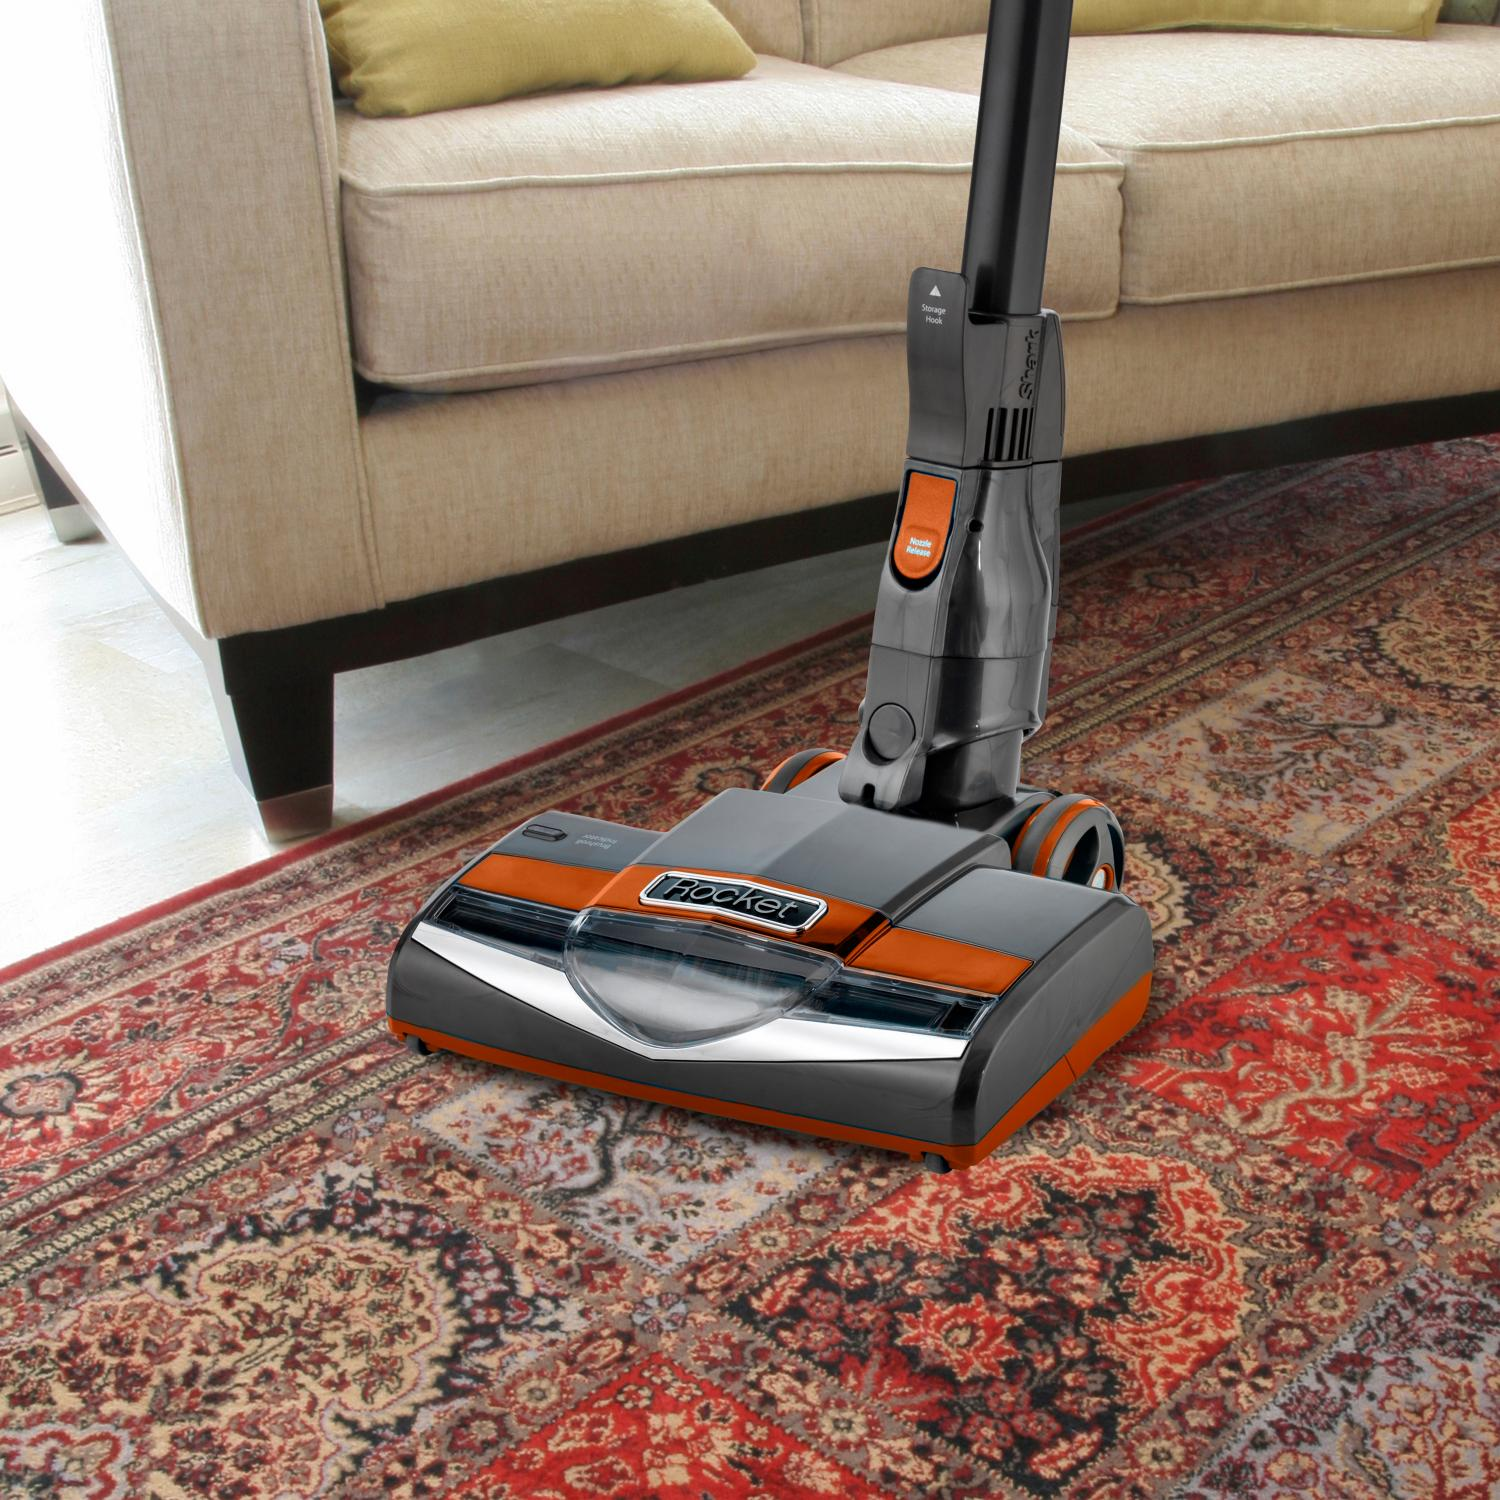 Shark HV302 Rocket Ultra-Light Corded Bagless Vacuum for Carpet and Hard Floor Cleaning with Swivel Steering and Car Detail Set, Gray/Orange (Renewed)